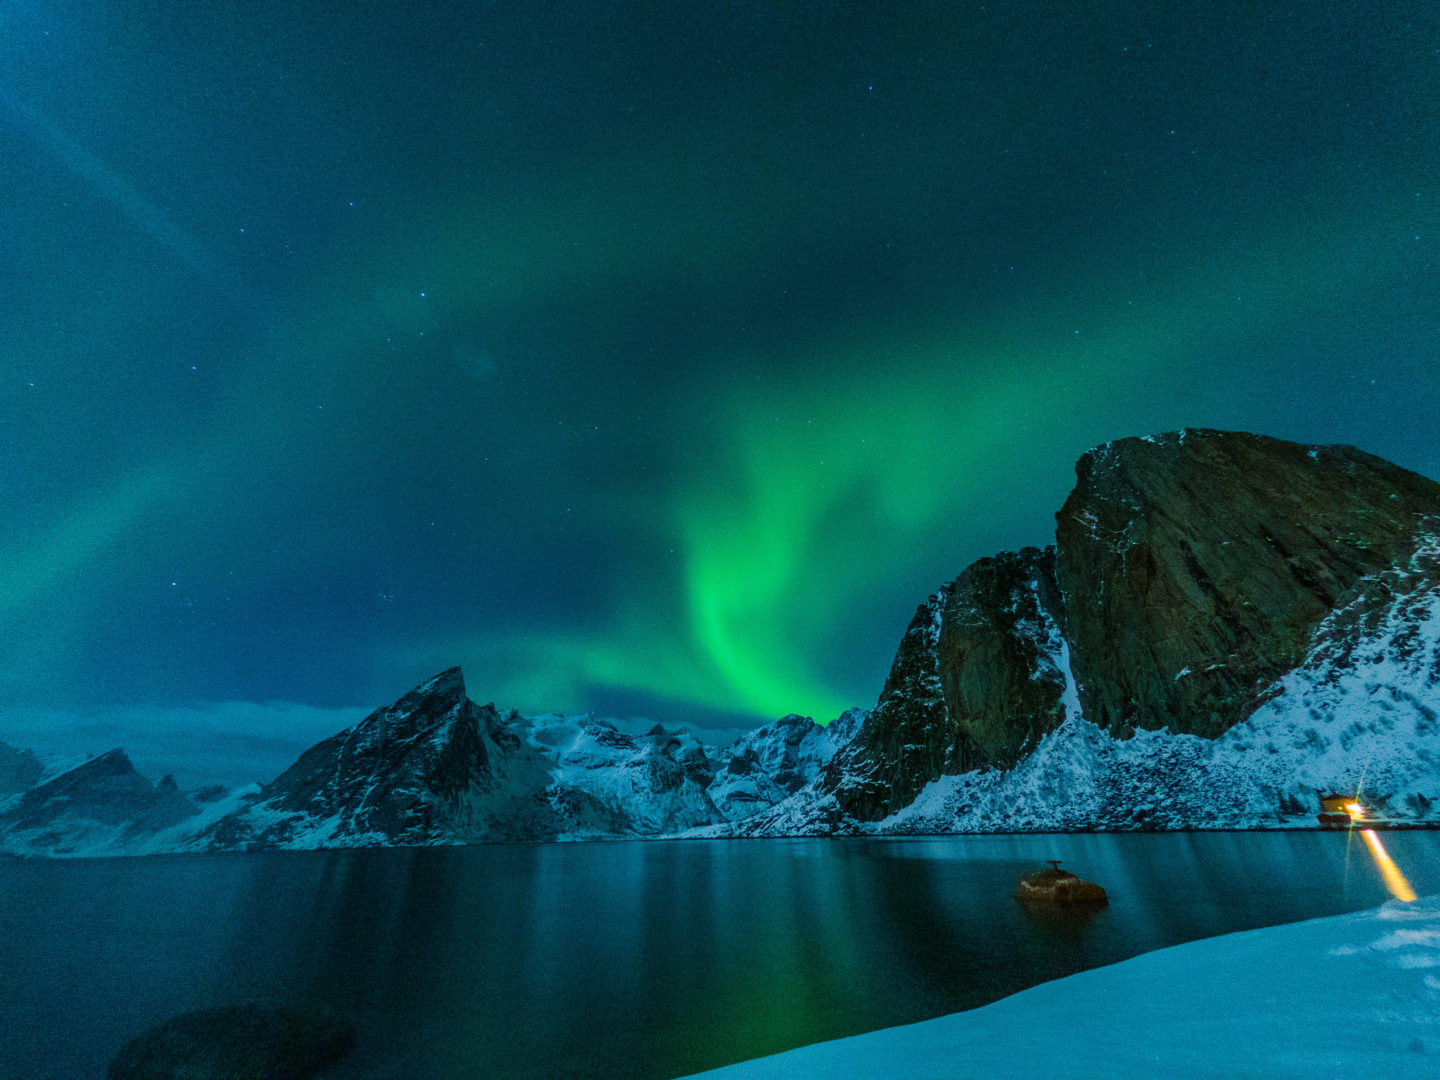 GoPro night settings for shooting the northern lights